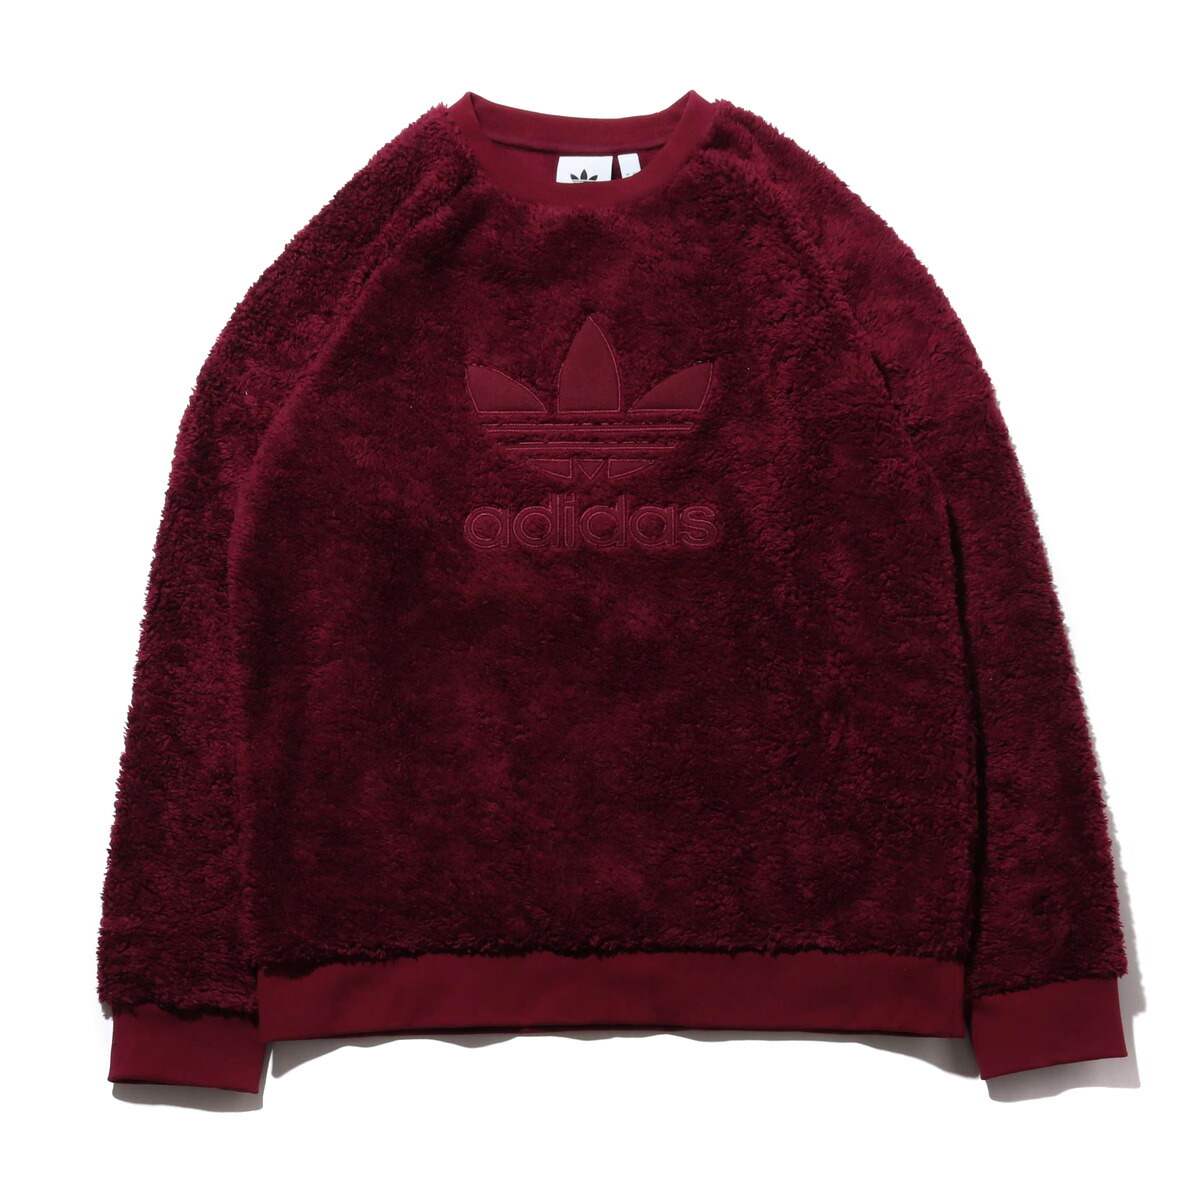 adidas WINTERIZED CREW SWEATSHIRT (????????????????????????) Marron 18FW I